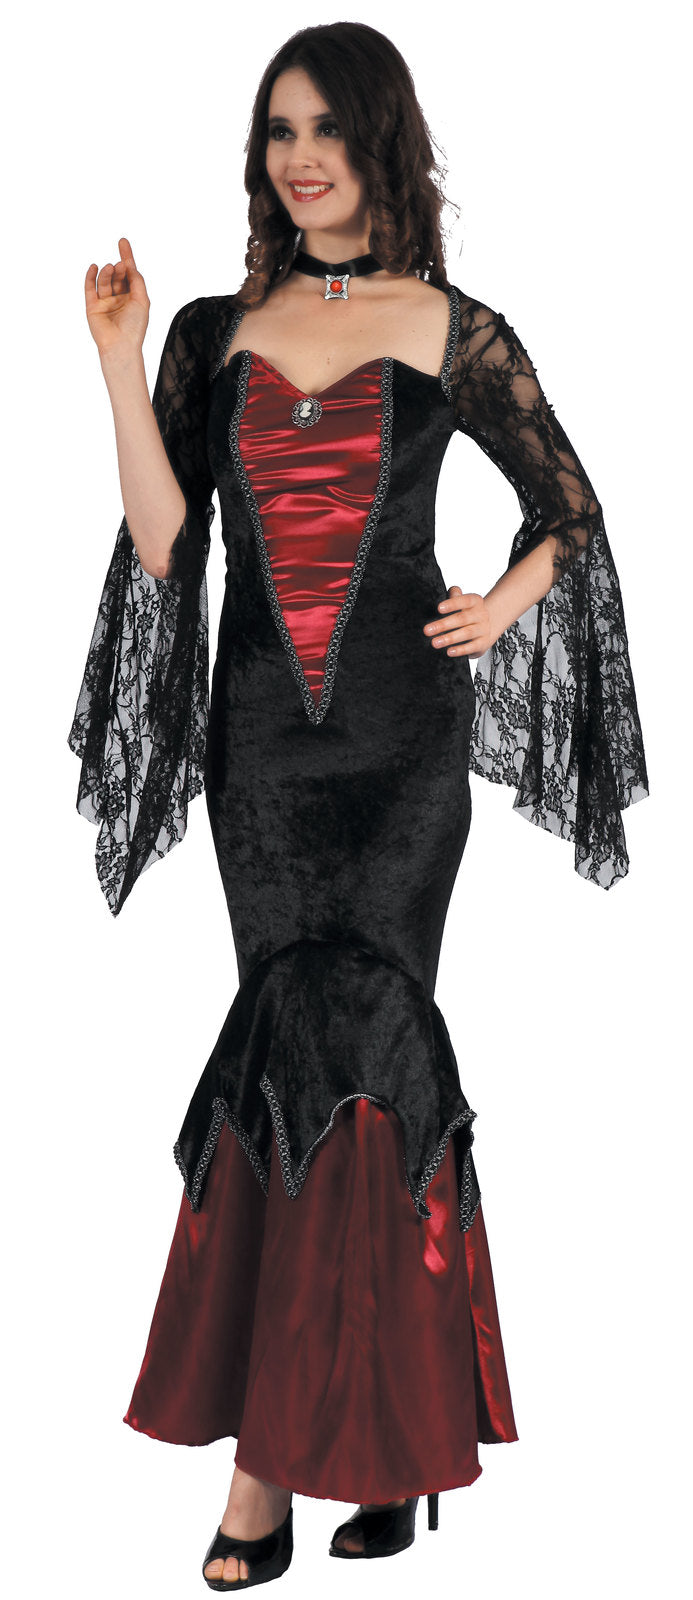 VAMPY VAMPIRESS HALLOWEEN COSTUME, ADULT - SIZE L